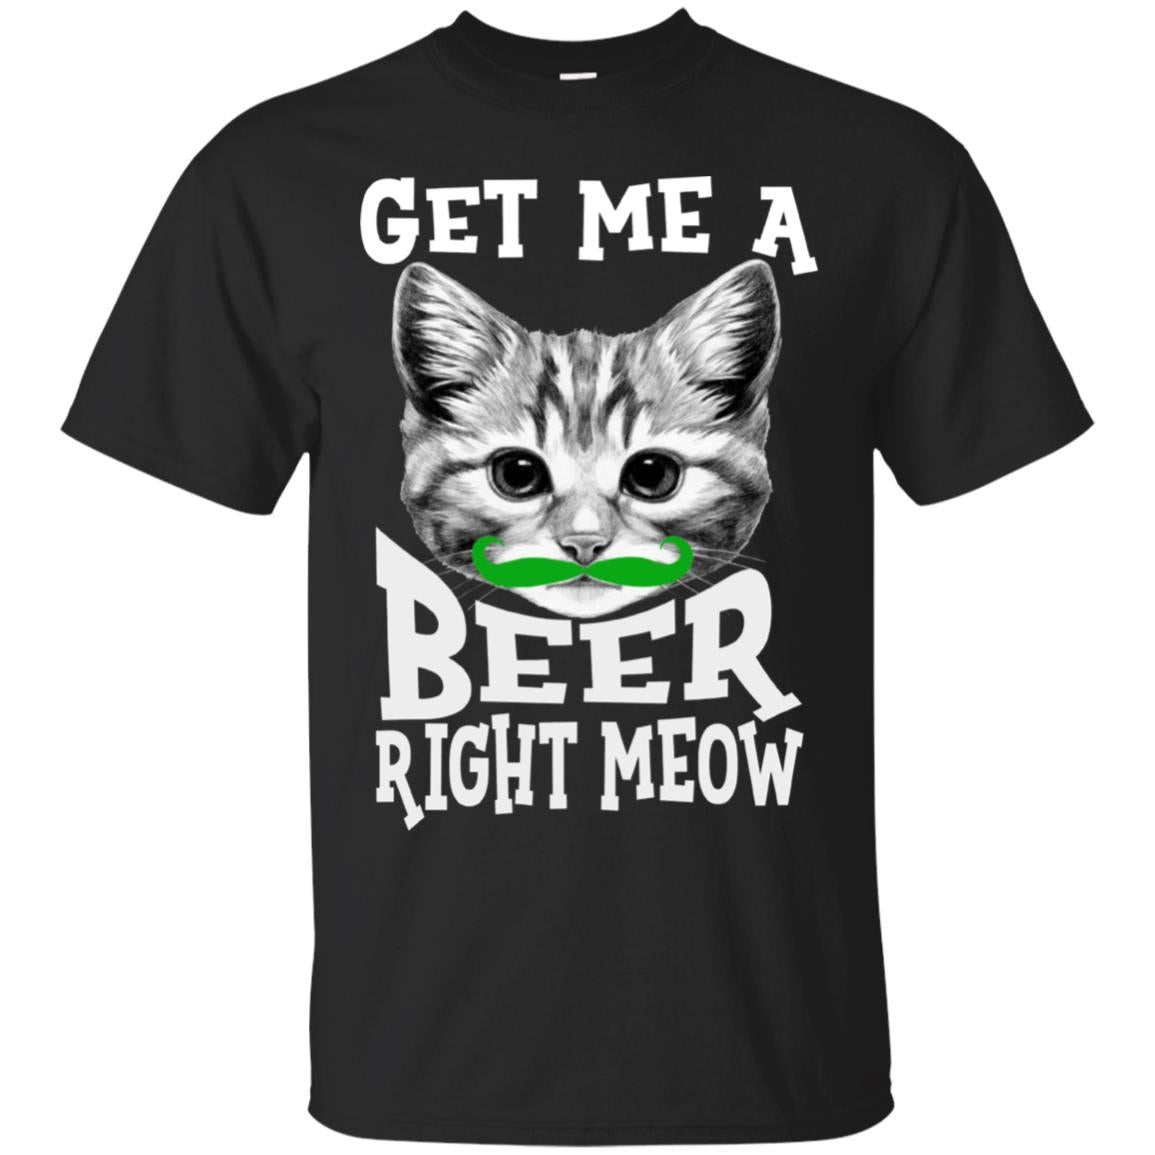 Saint Patrick's Day 2018 Get Me A Beer Right Meow 99promocode